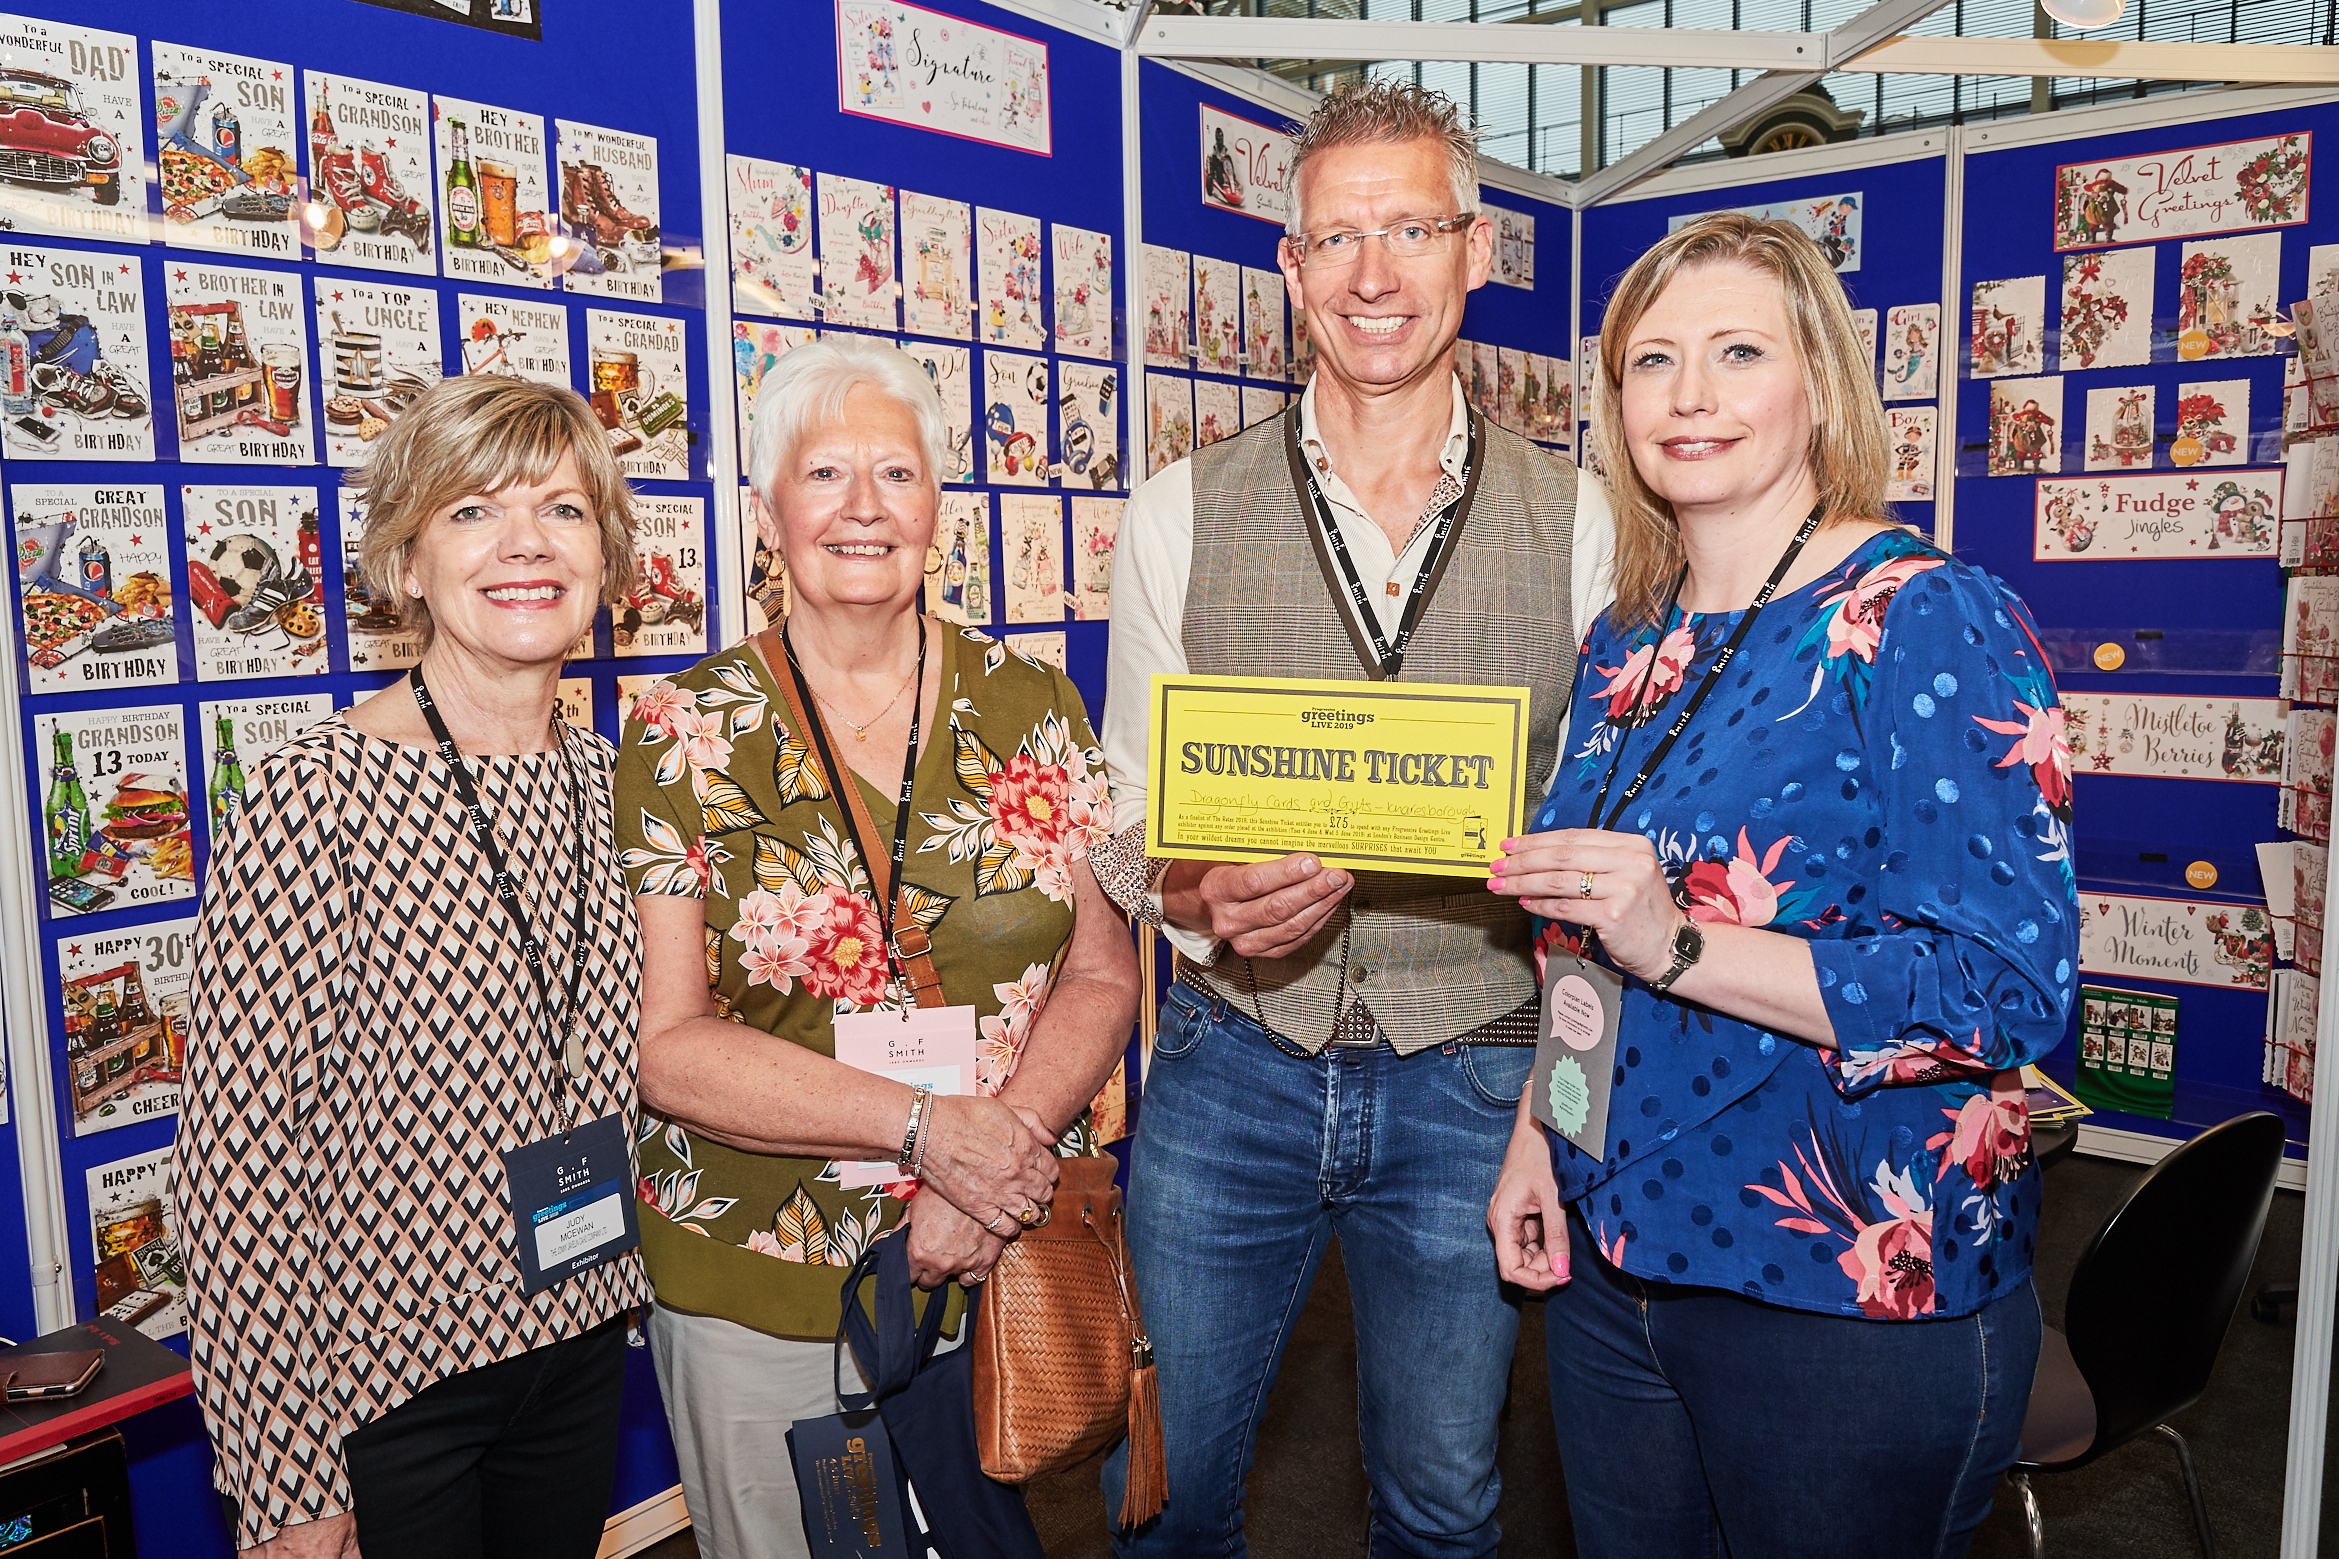 Above: Dragonfly's Rachael Barnes and her business partner and mum Rita Knibbs (second left) with Jonny Javelin's Jonny Spears and Judy McEwan at a PG Live.